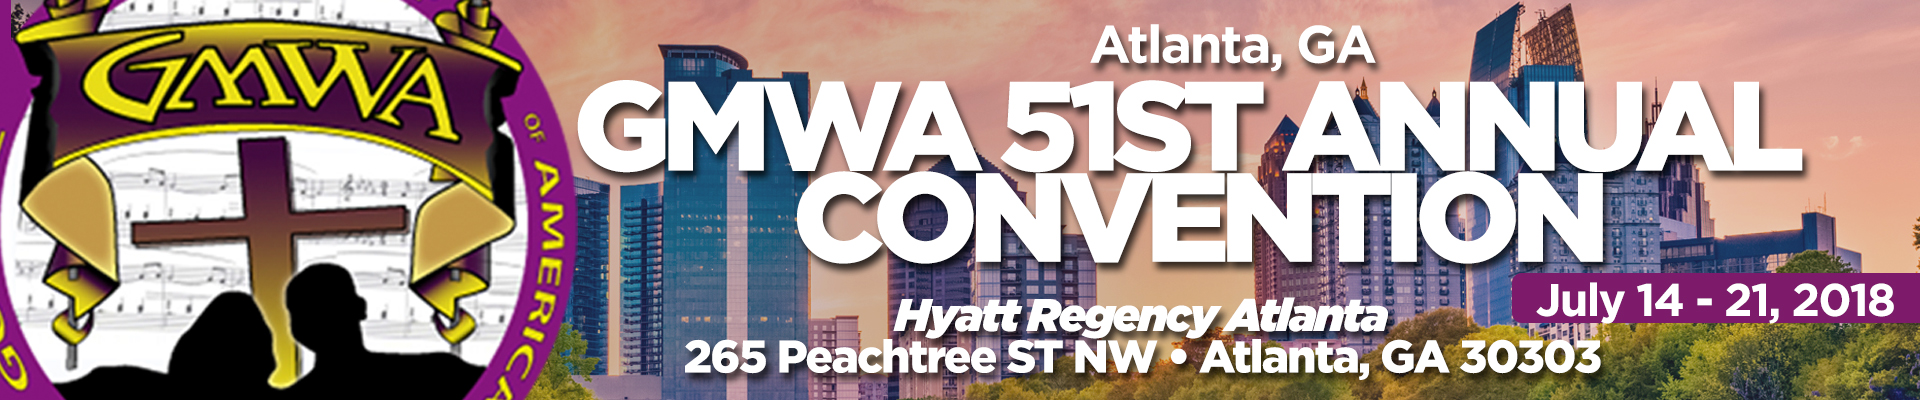 GMWA National Convention